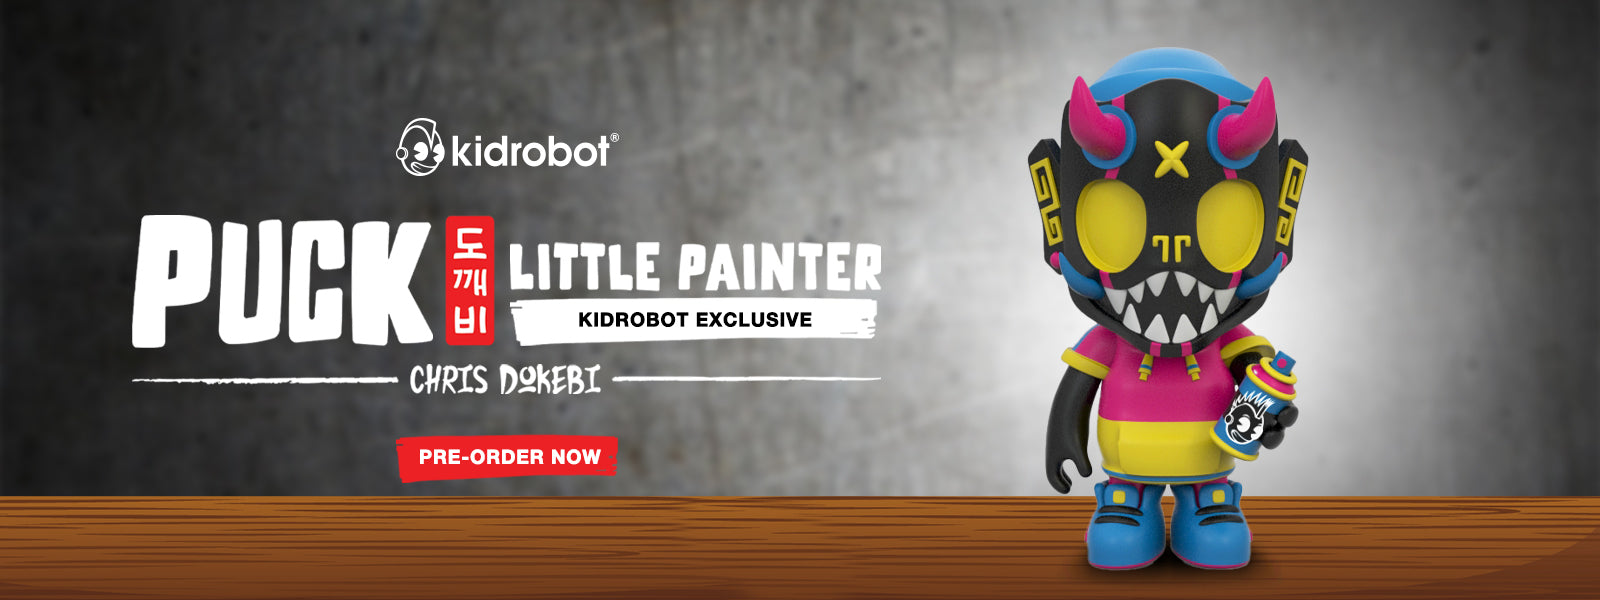 Chris Dokebi Art Toys - Kidrobot